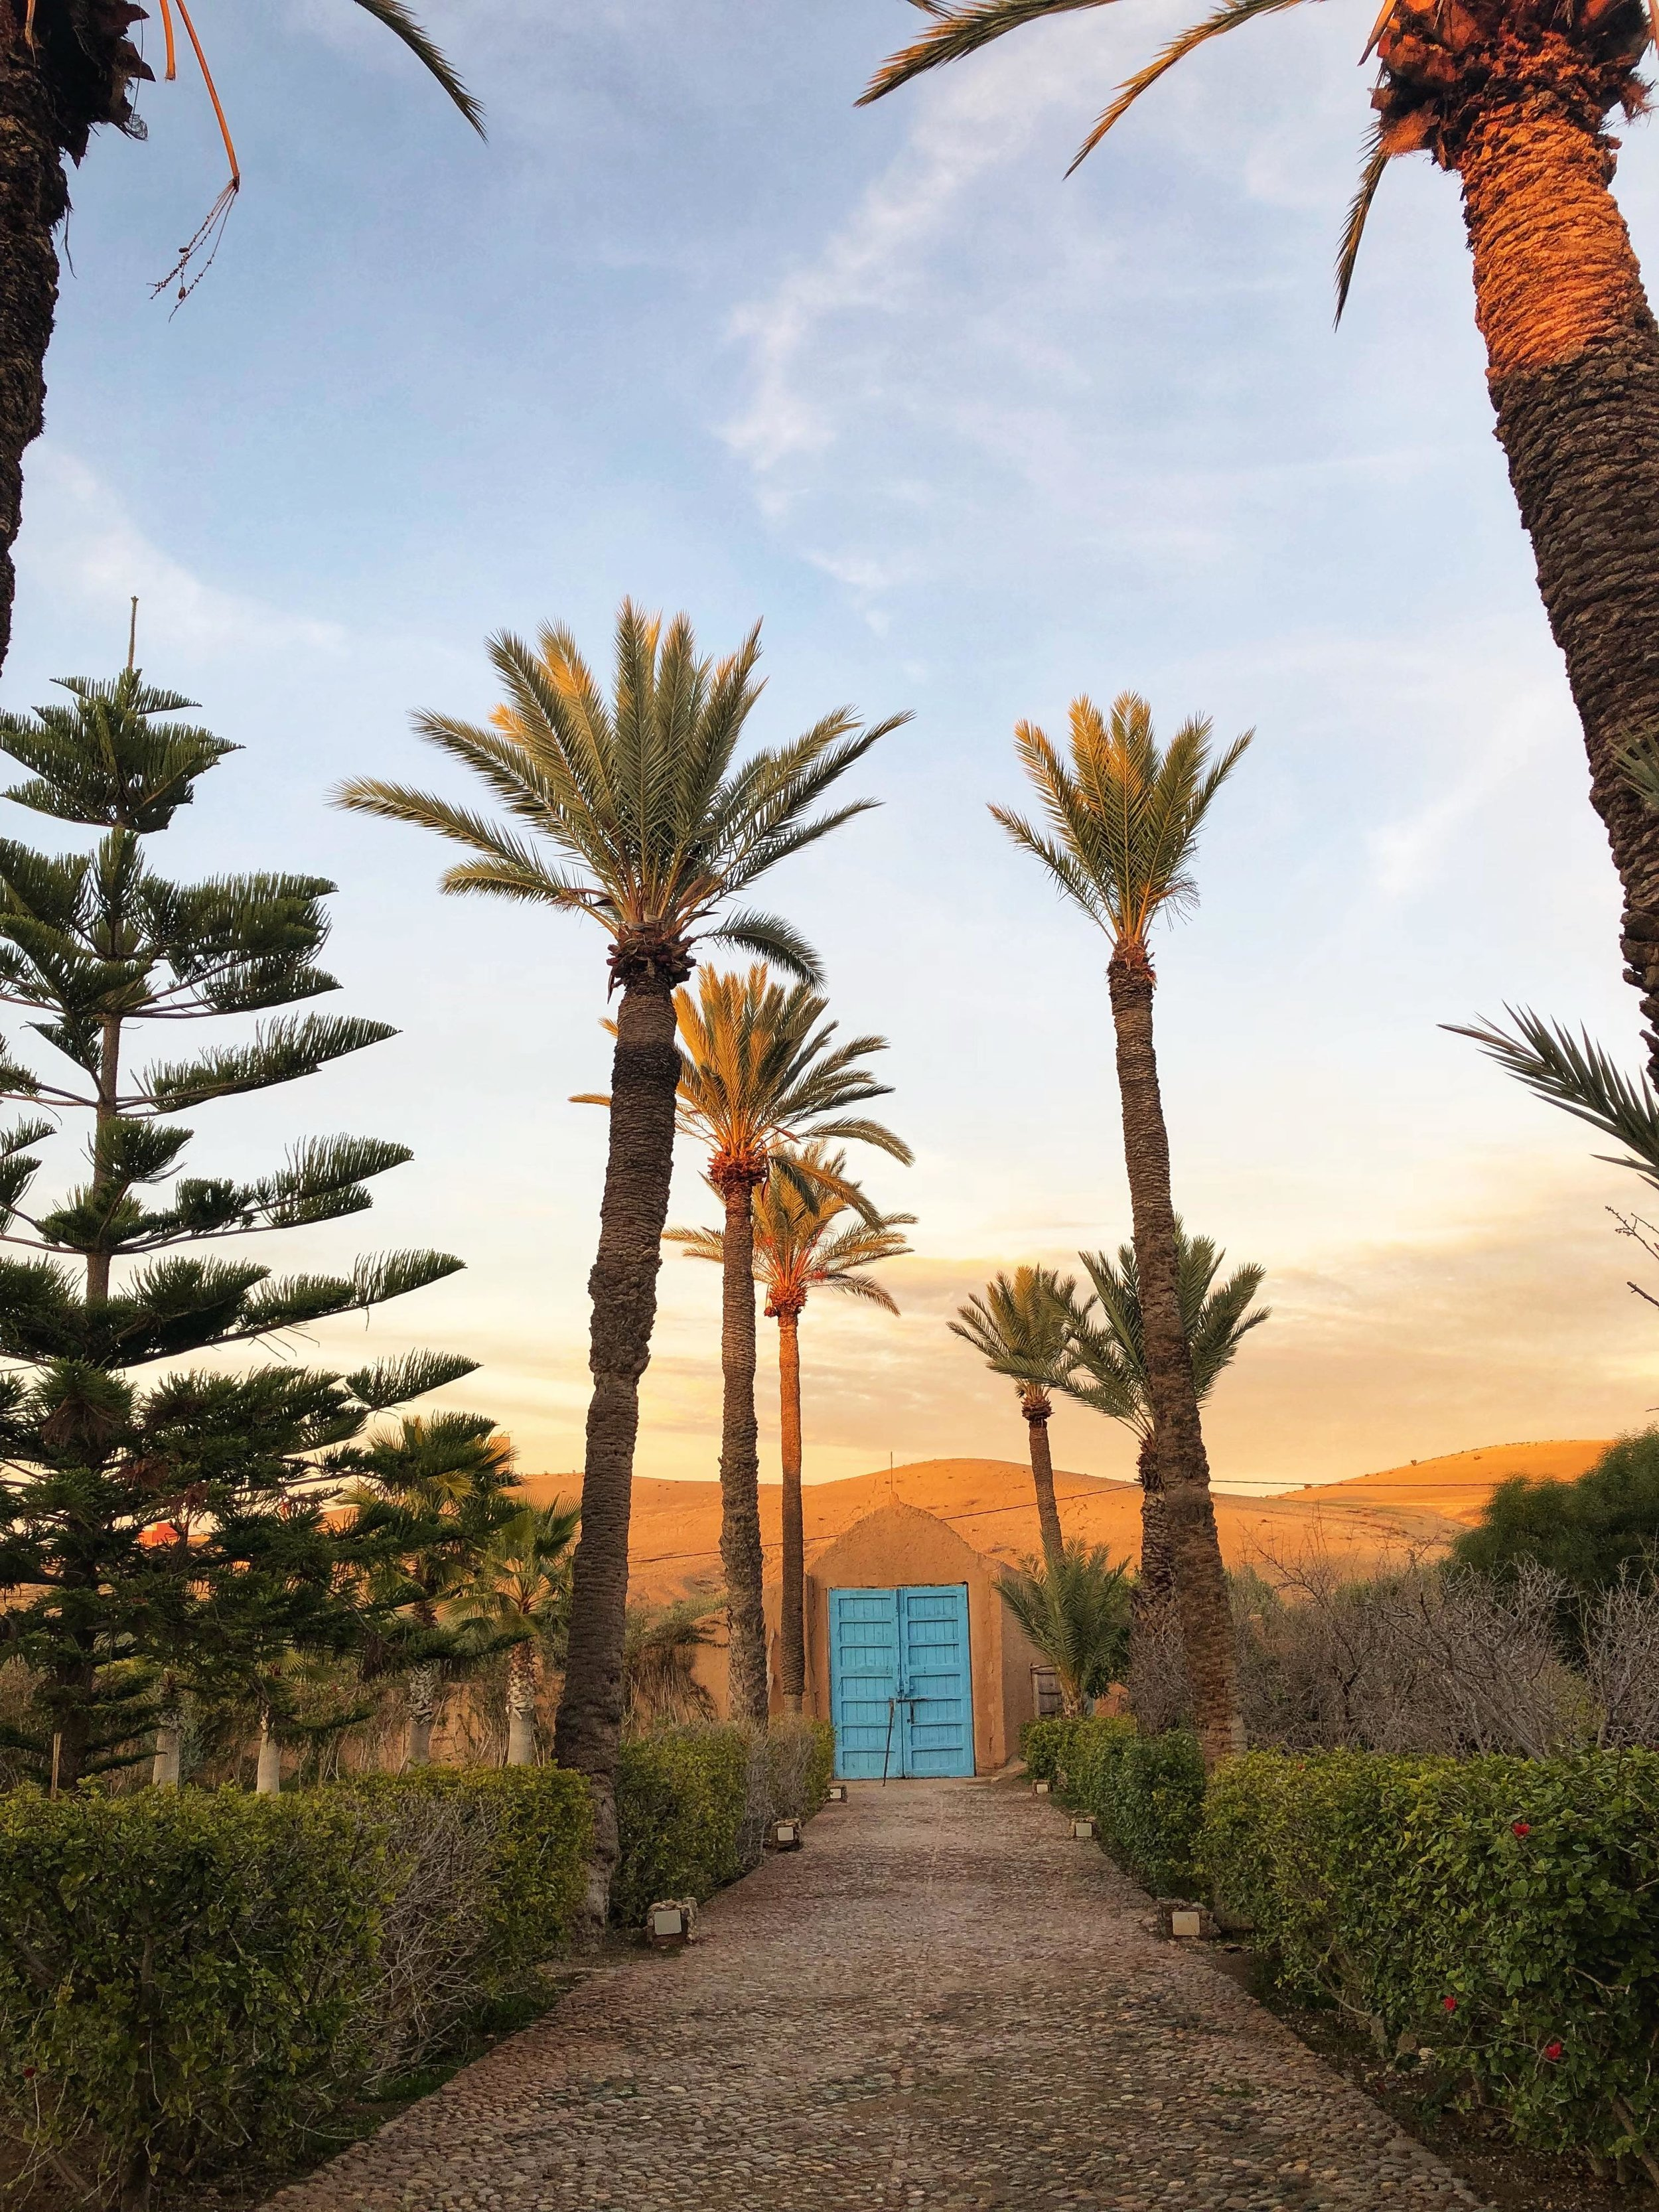 Our ecokasbah 1 hour from Marrakech